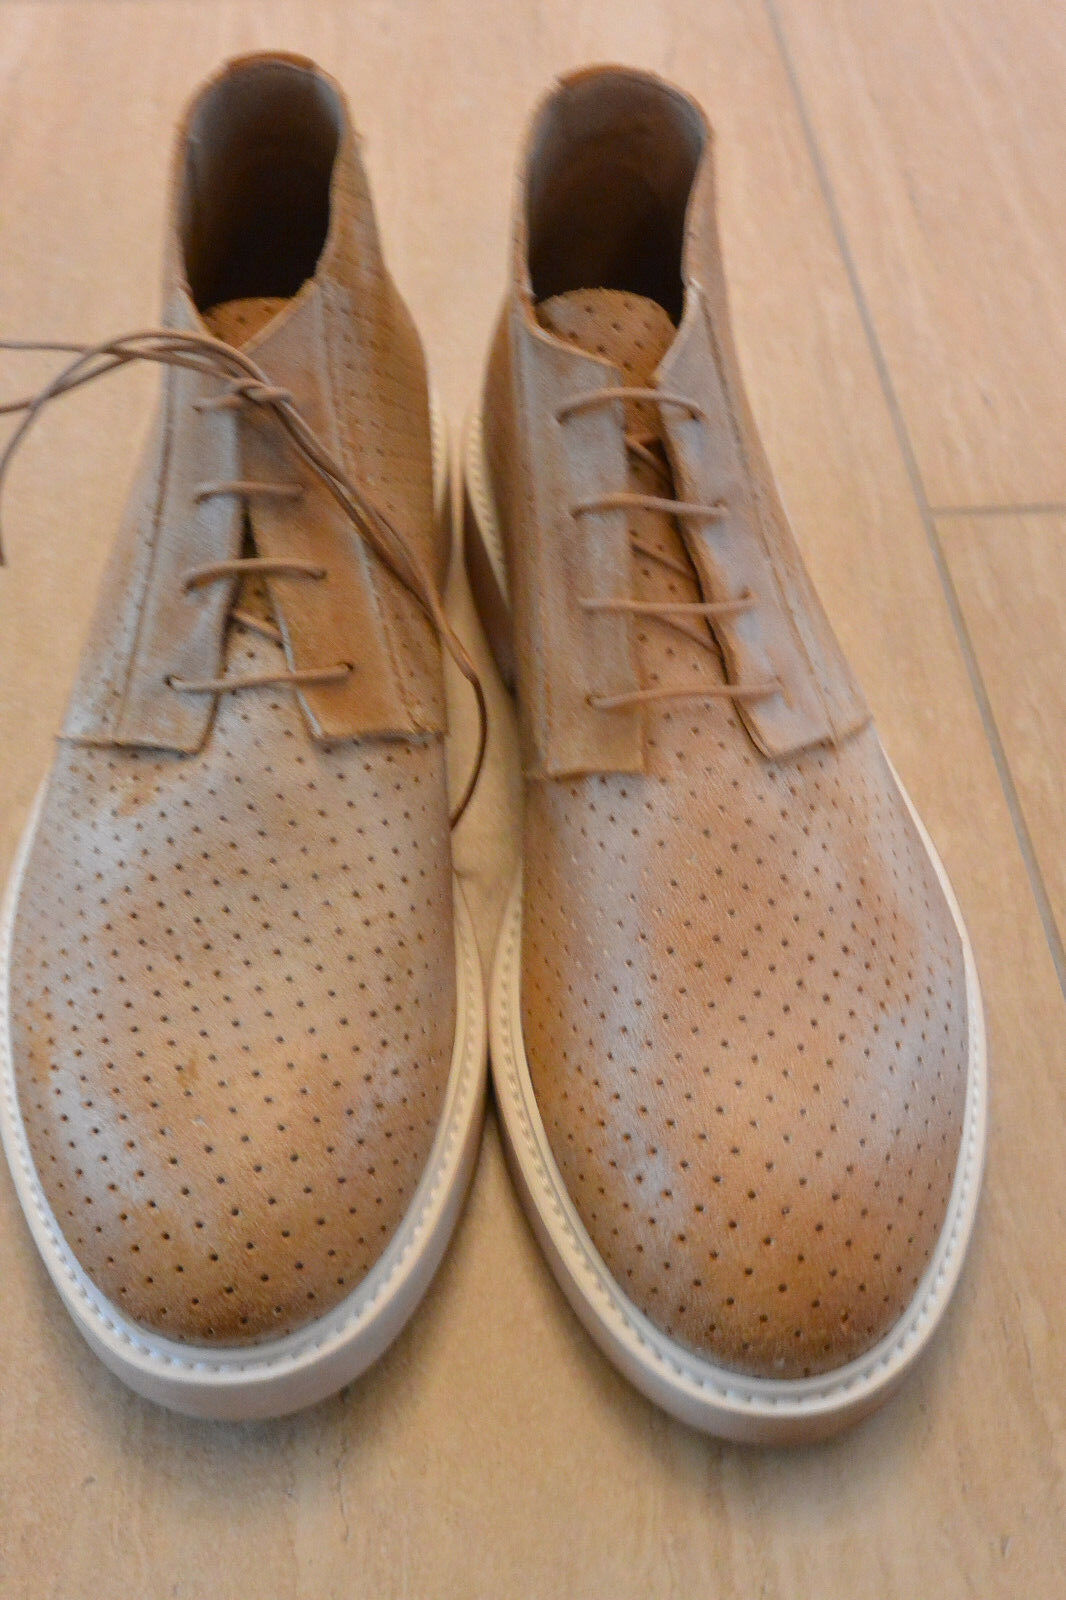 NEW Donald J Pliner  Uomo Giaco Leder Lace Up Größe Chukka Stiefel in Saddle Größe Up 8 a76fec